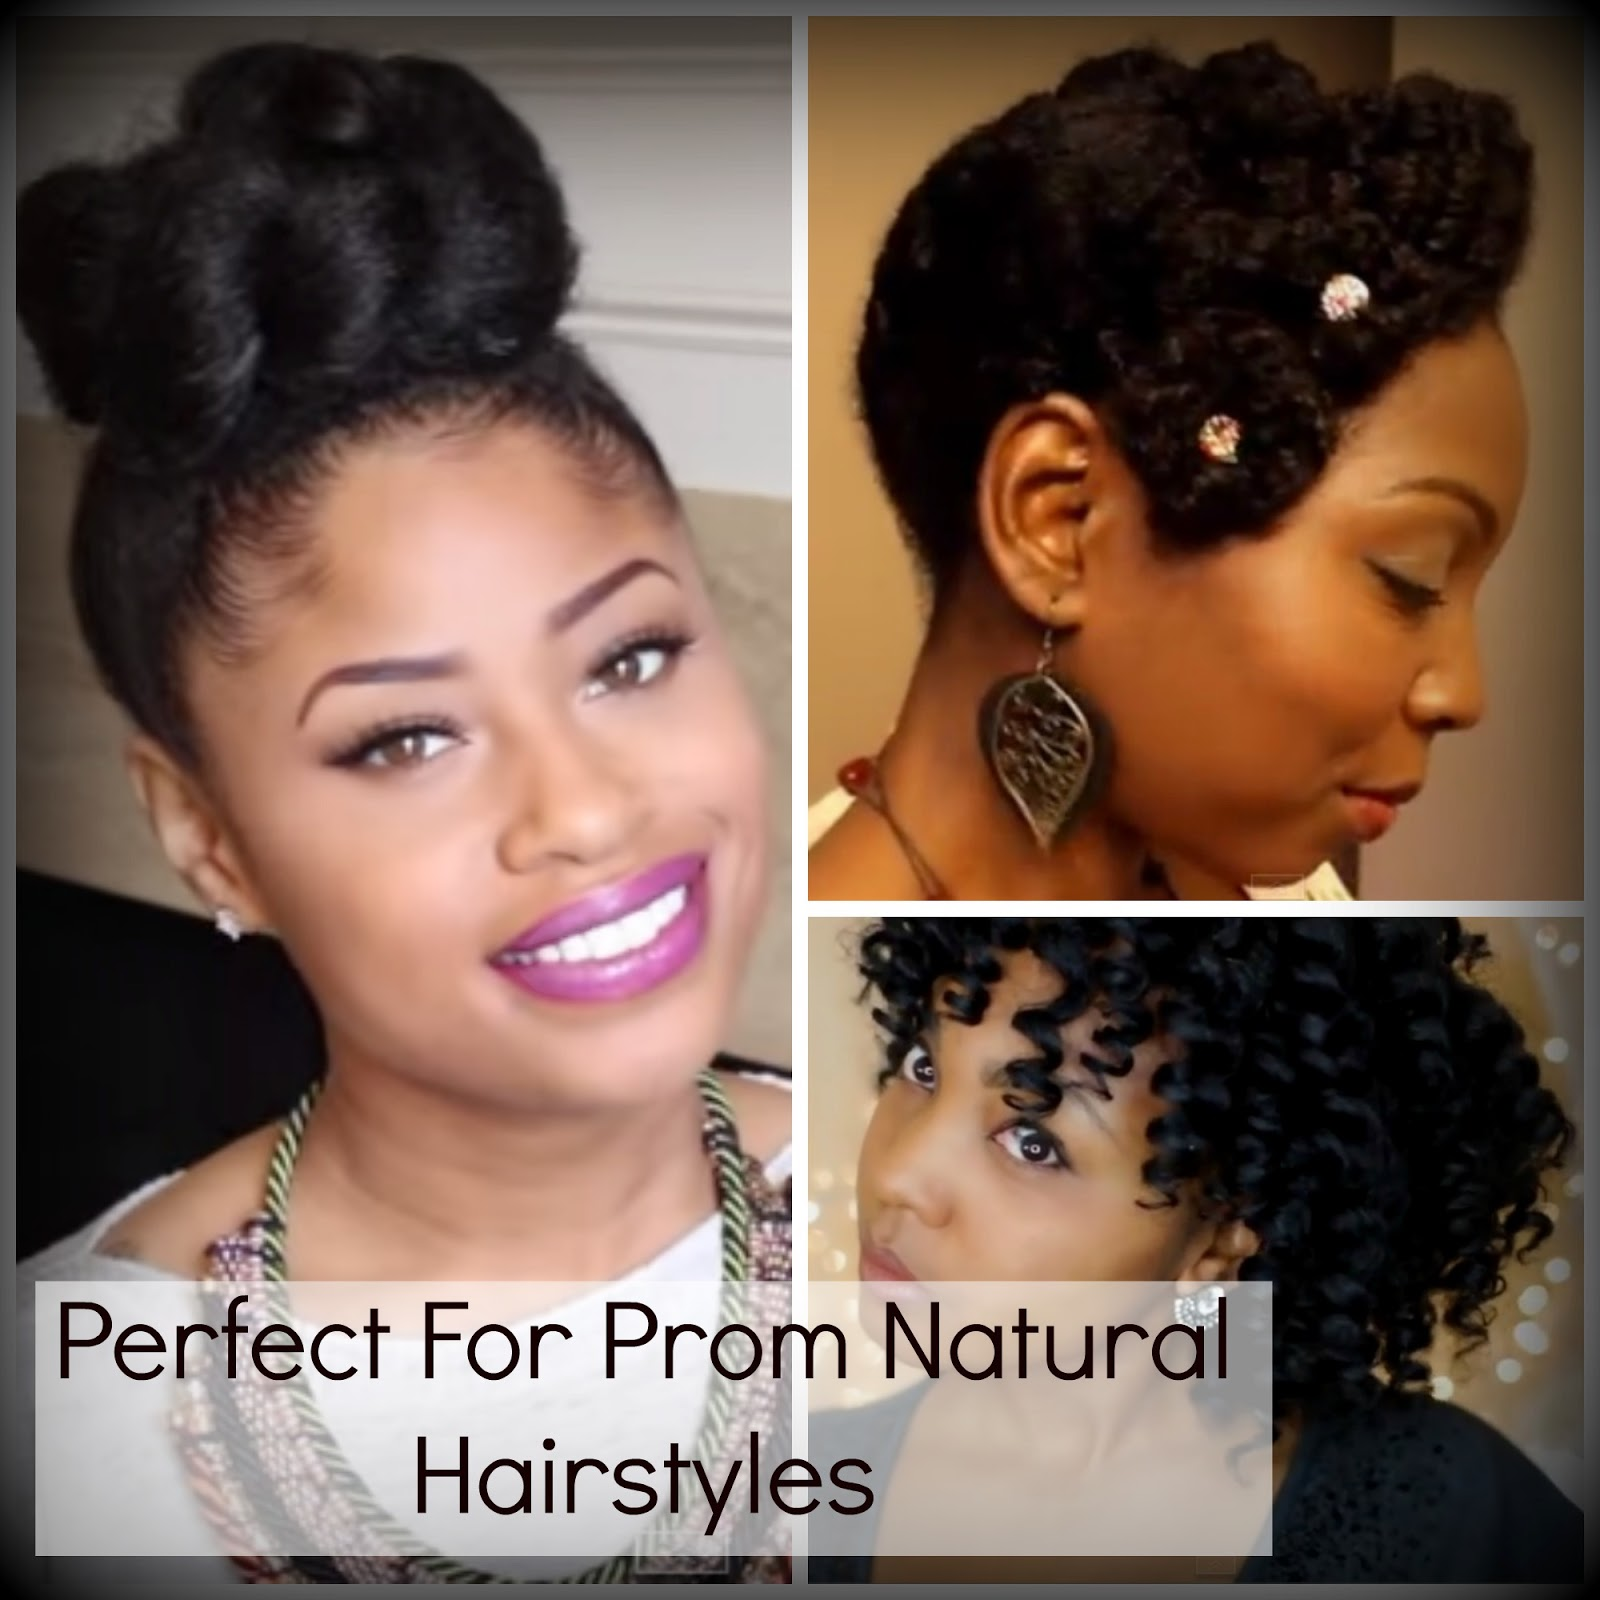 Perfect For Prom Natural Hairstyles